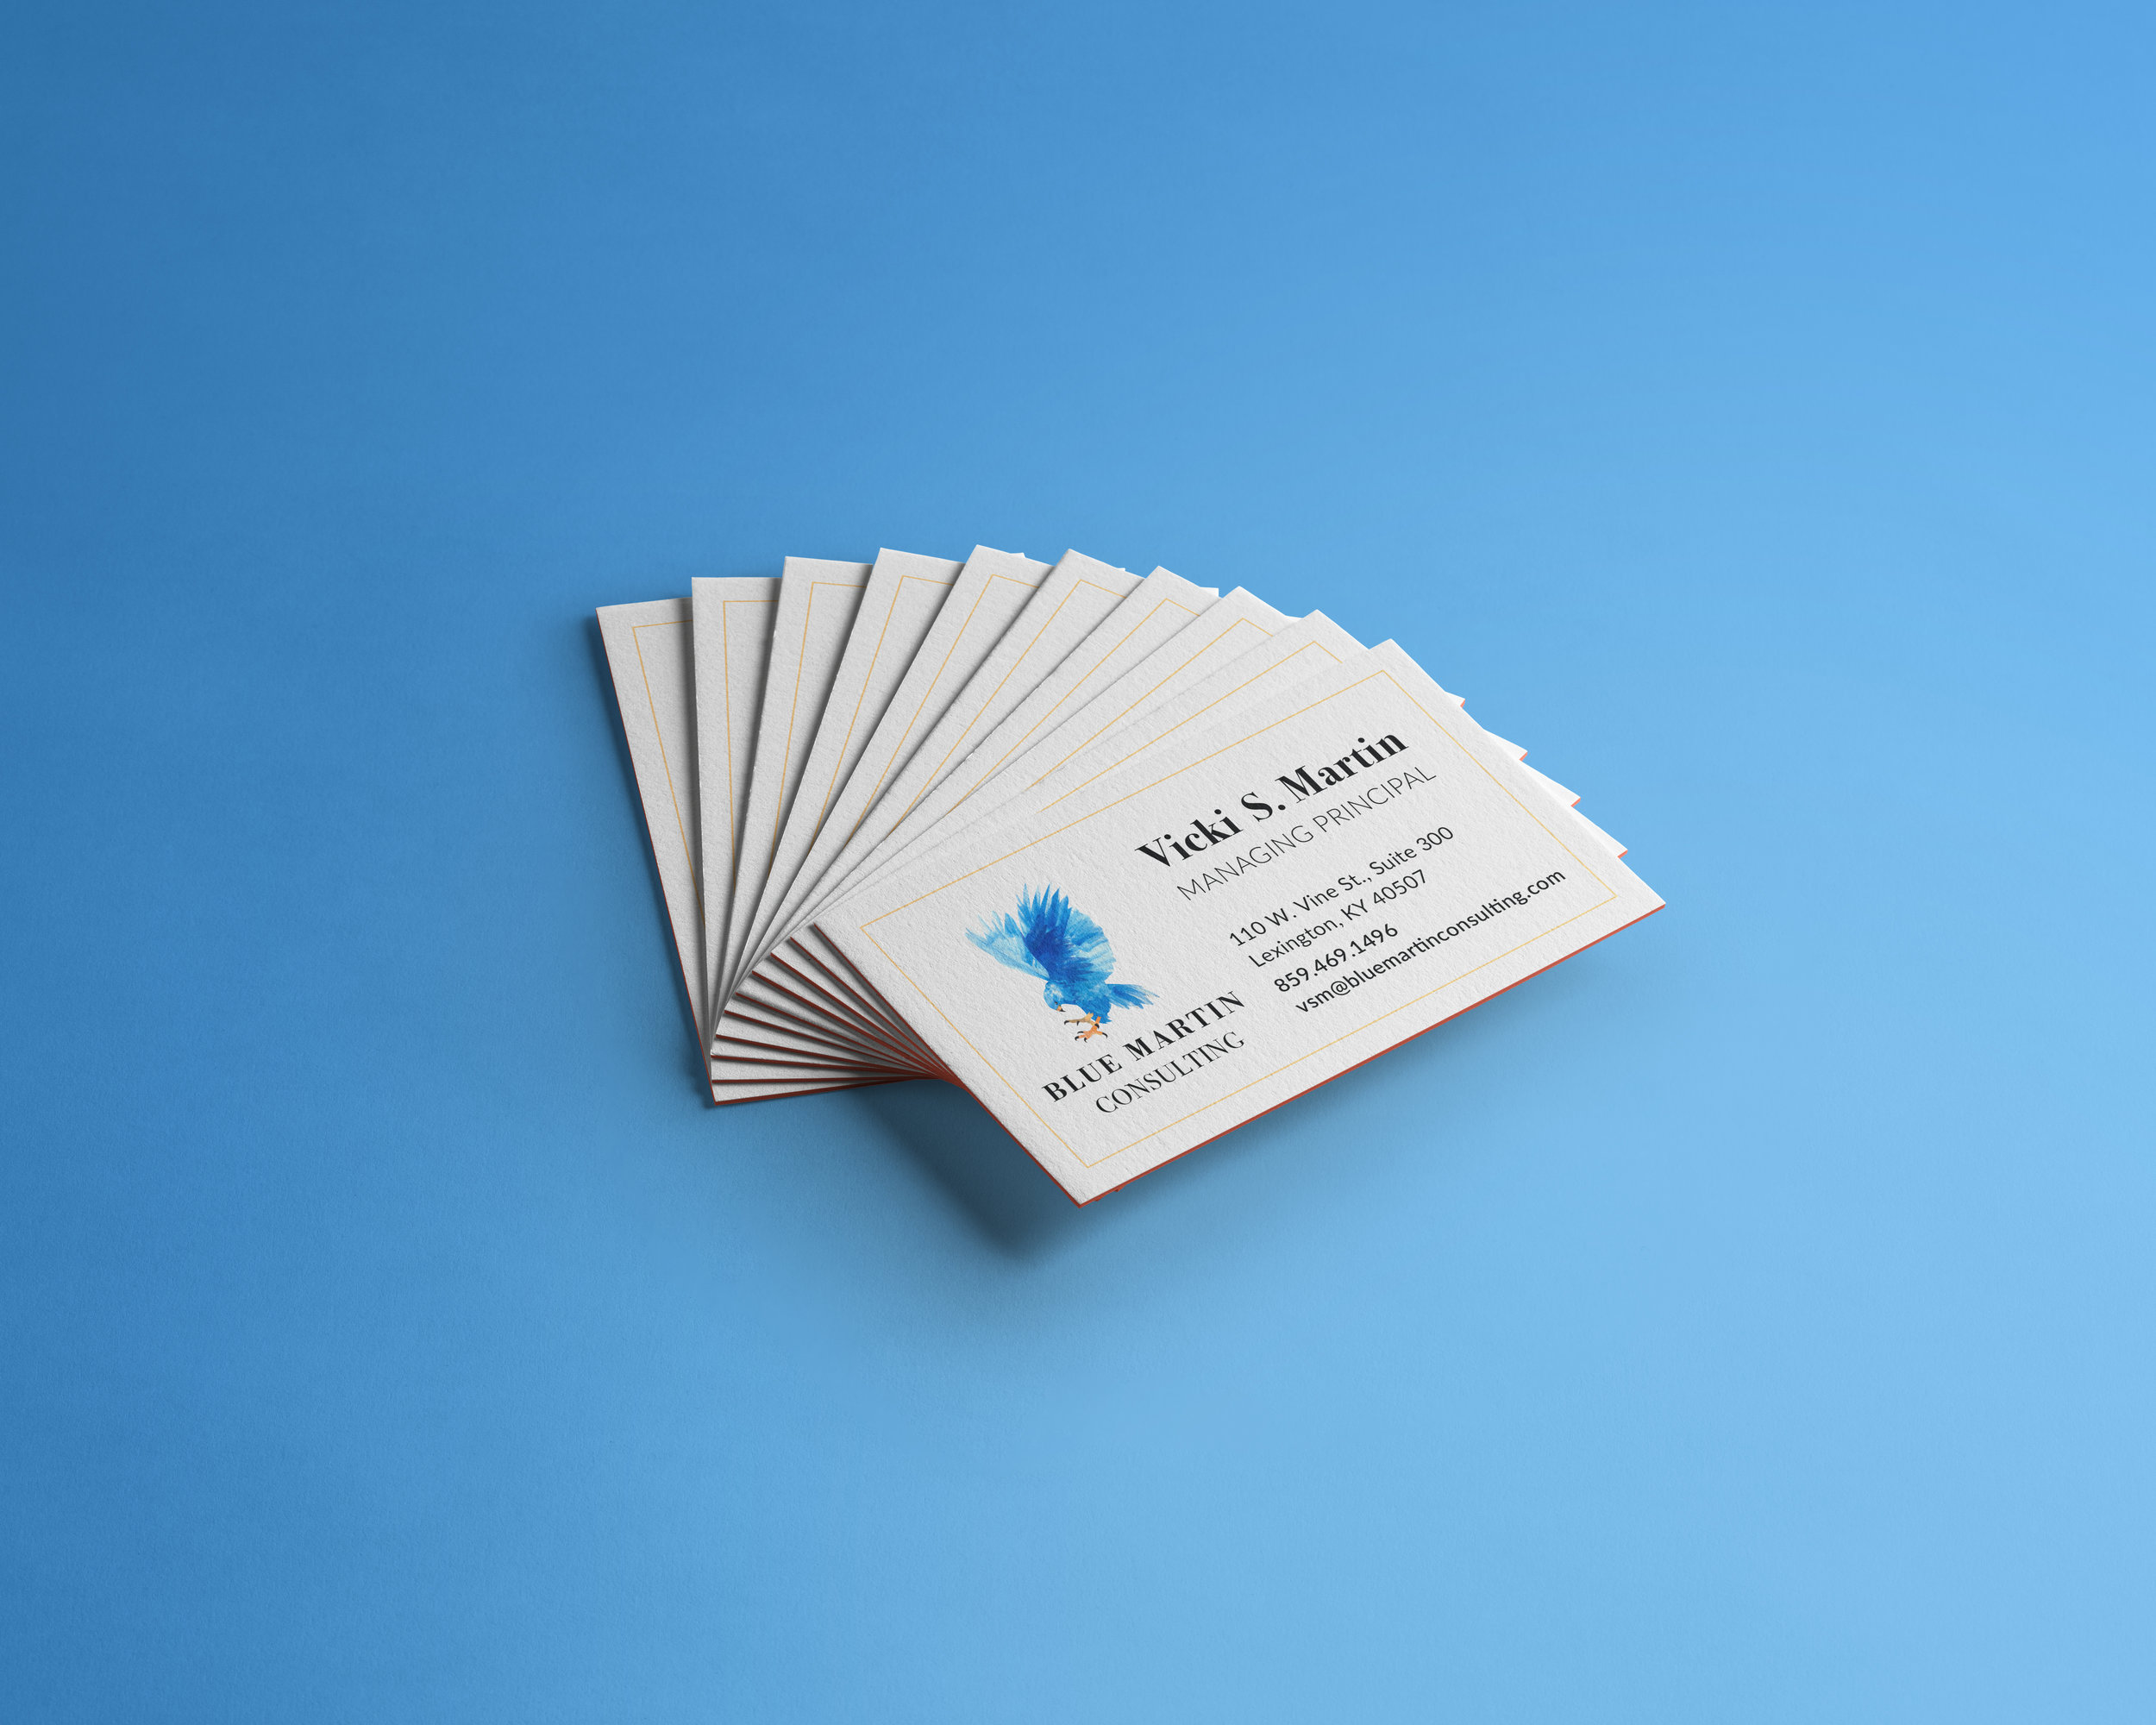 Blue Martin Mockup Business card.jpg